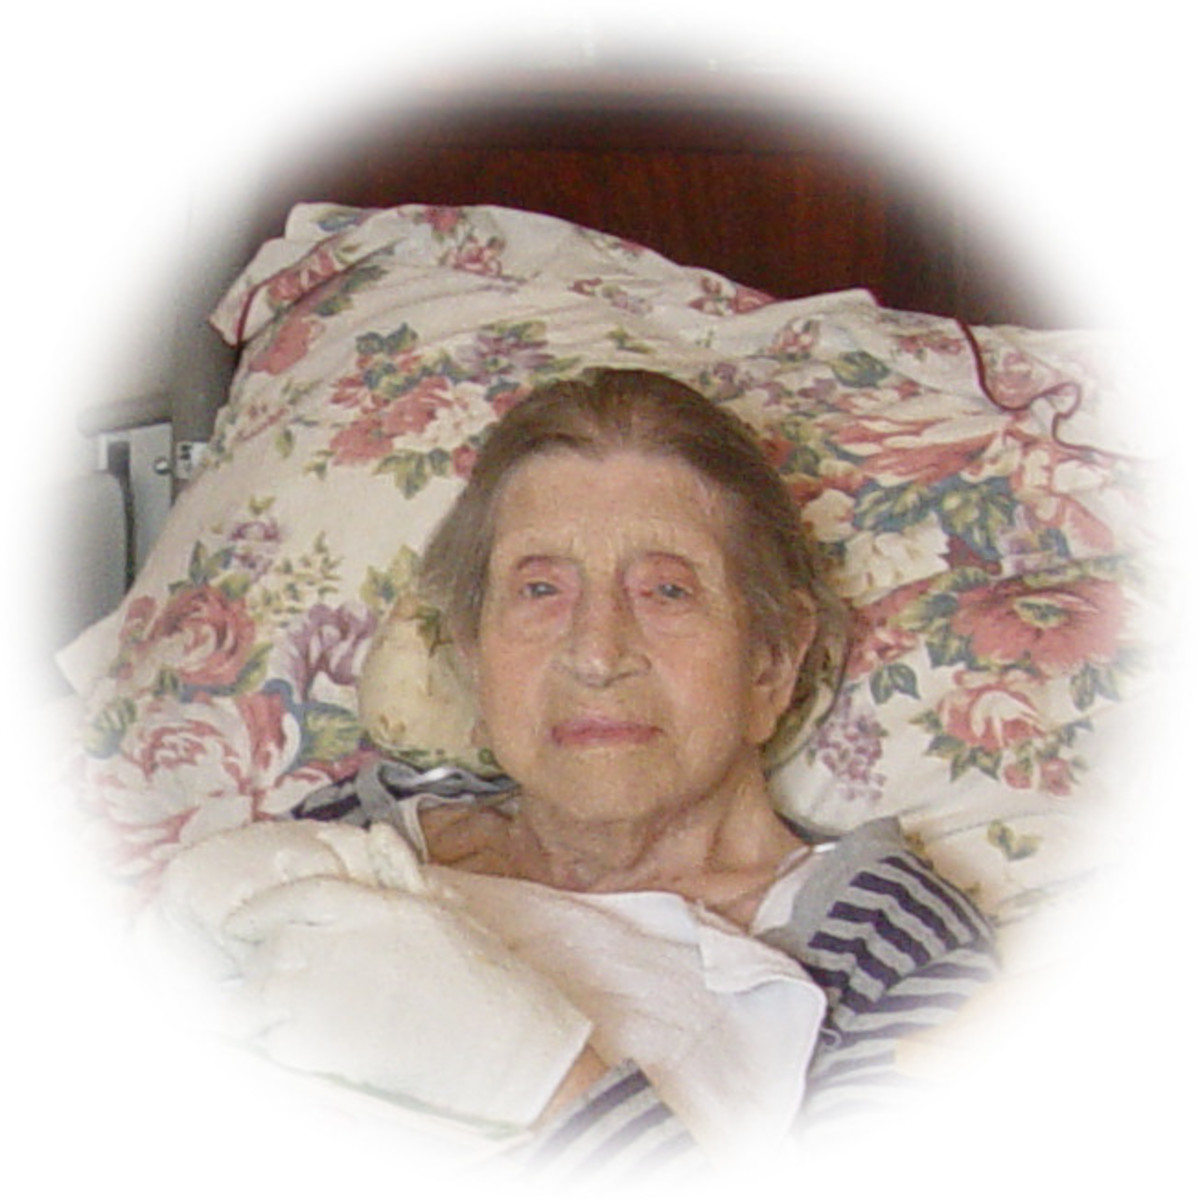 My mom, 101 years old